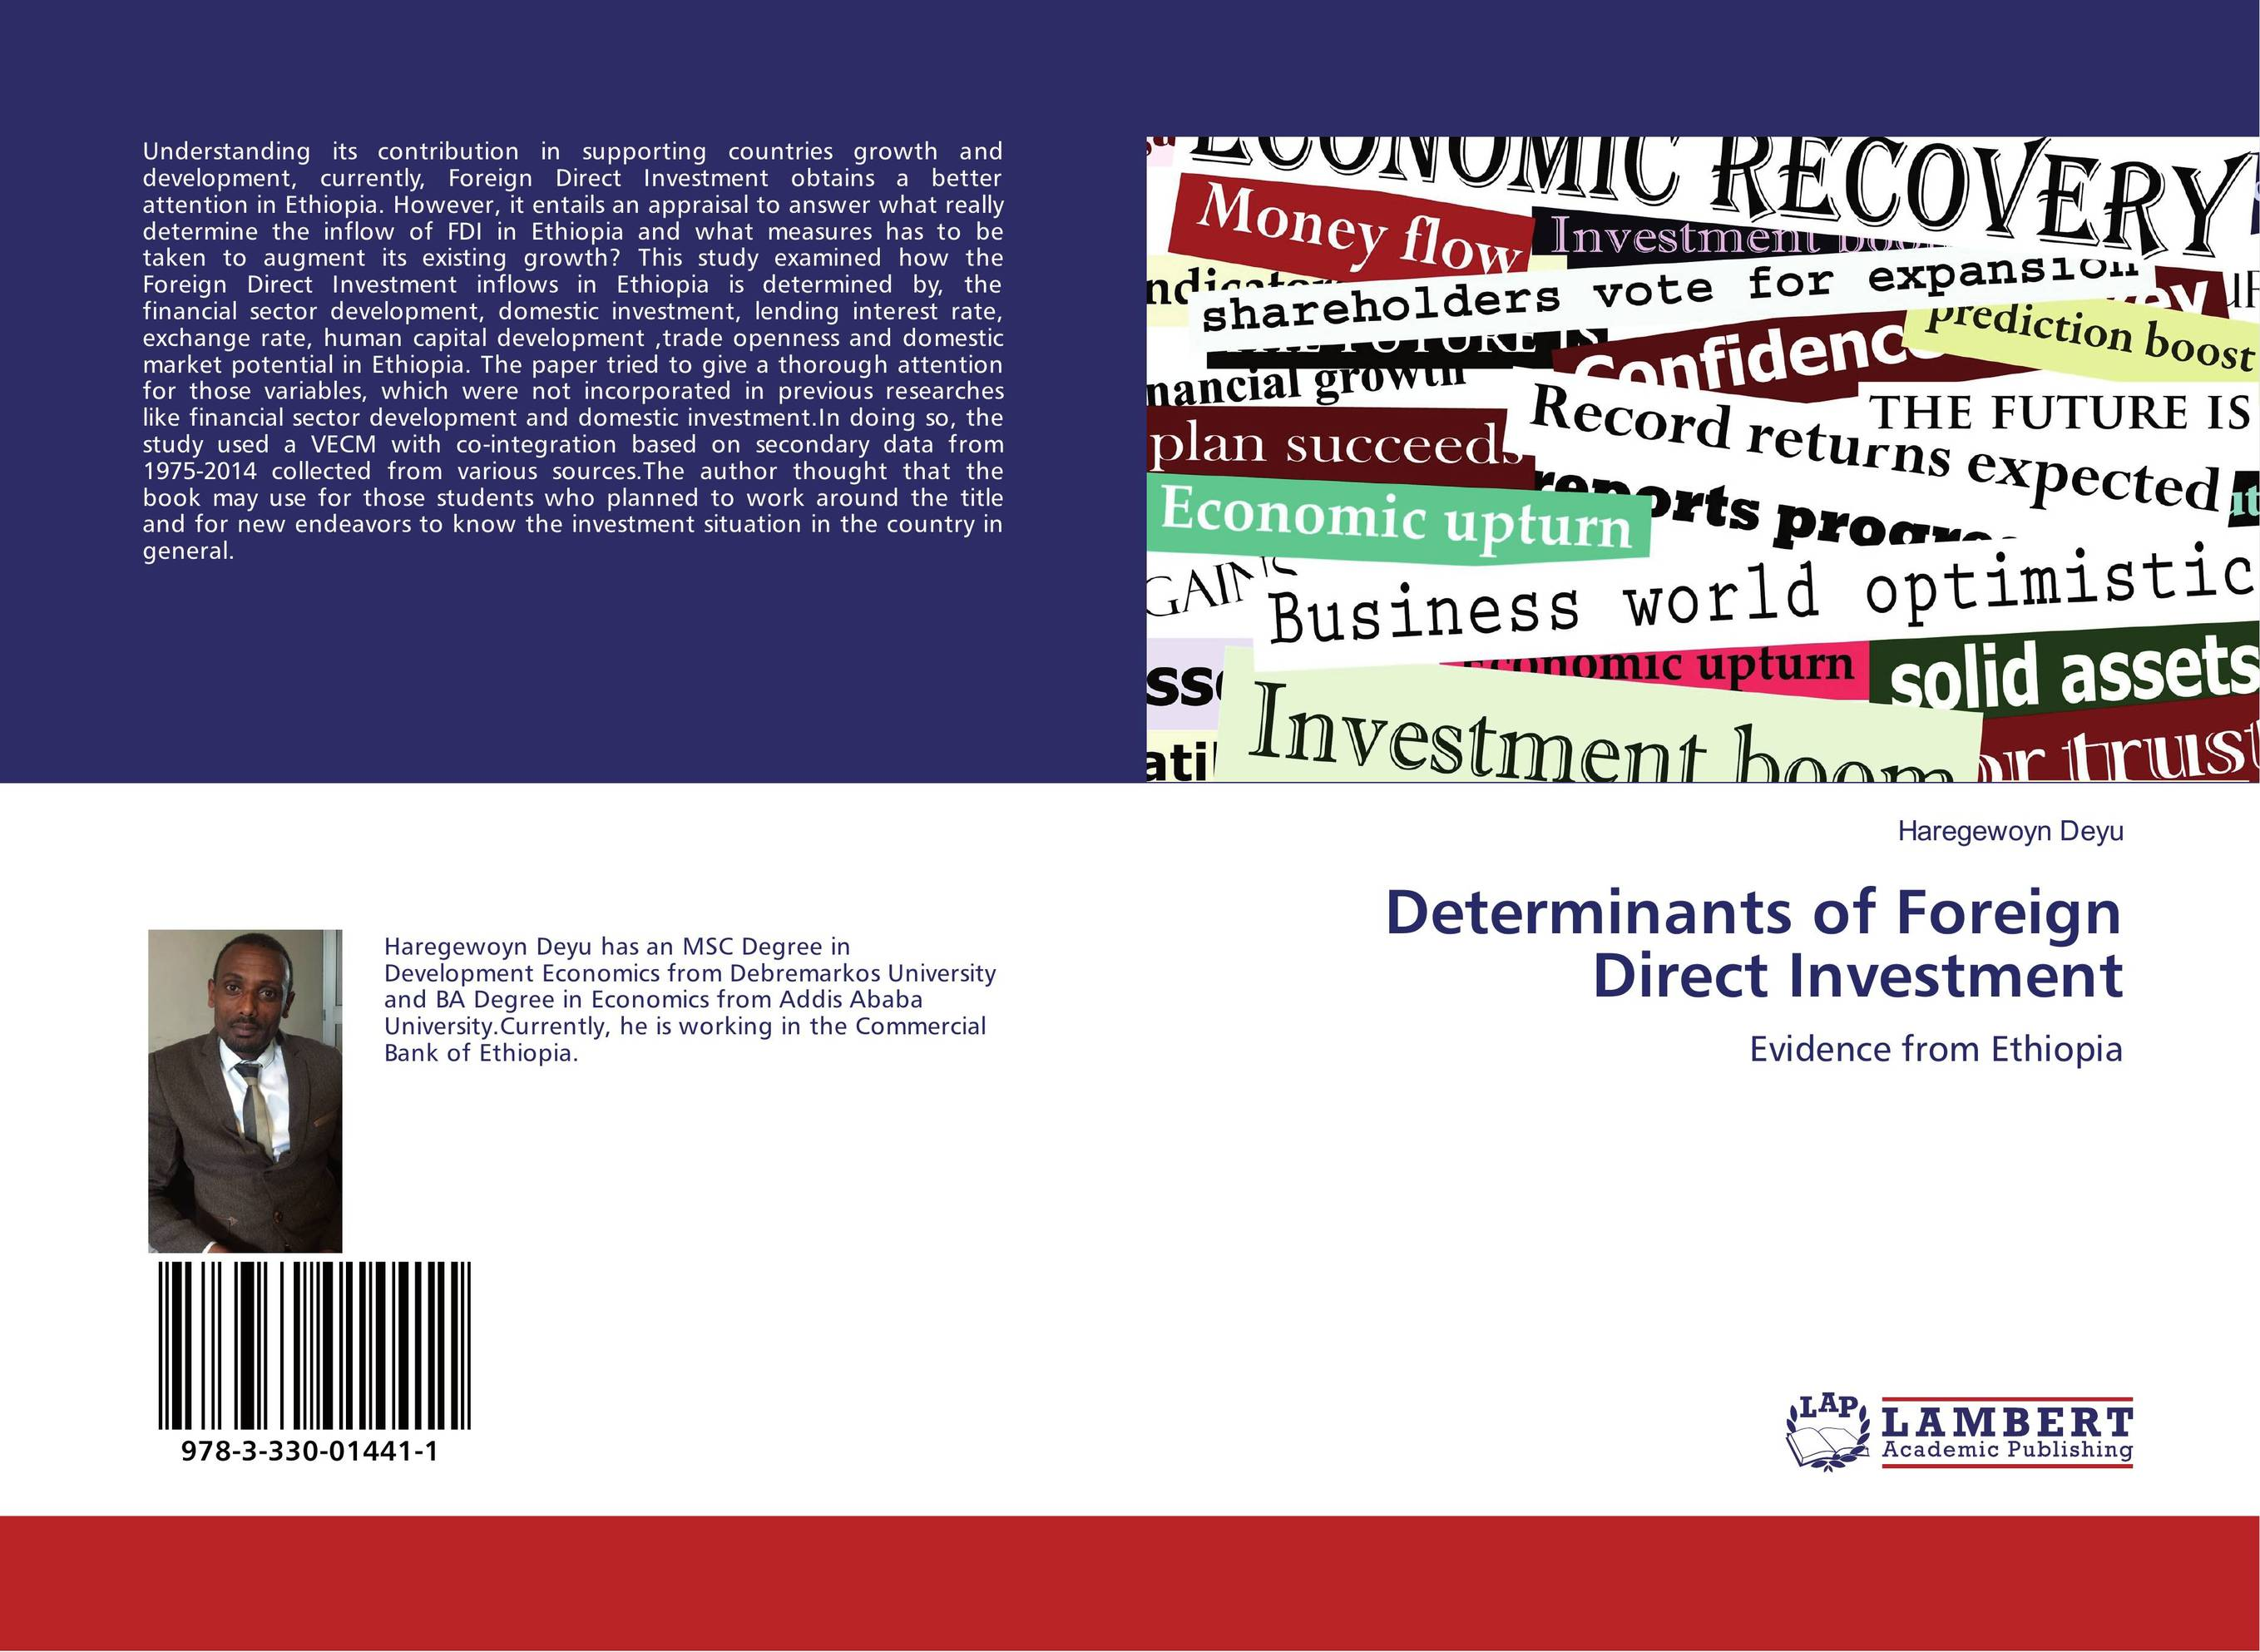 host country of foreign investment Discuss the benefits and costs of fdi from both host and home country perspectives, including the ways in which host governments restrict inward fdi (10 marks) definition foreign direct investment (fdi) occurs when a firm invests directly in facilities to produce or market a product in a foreign country.